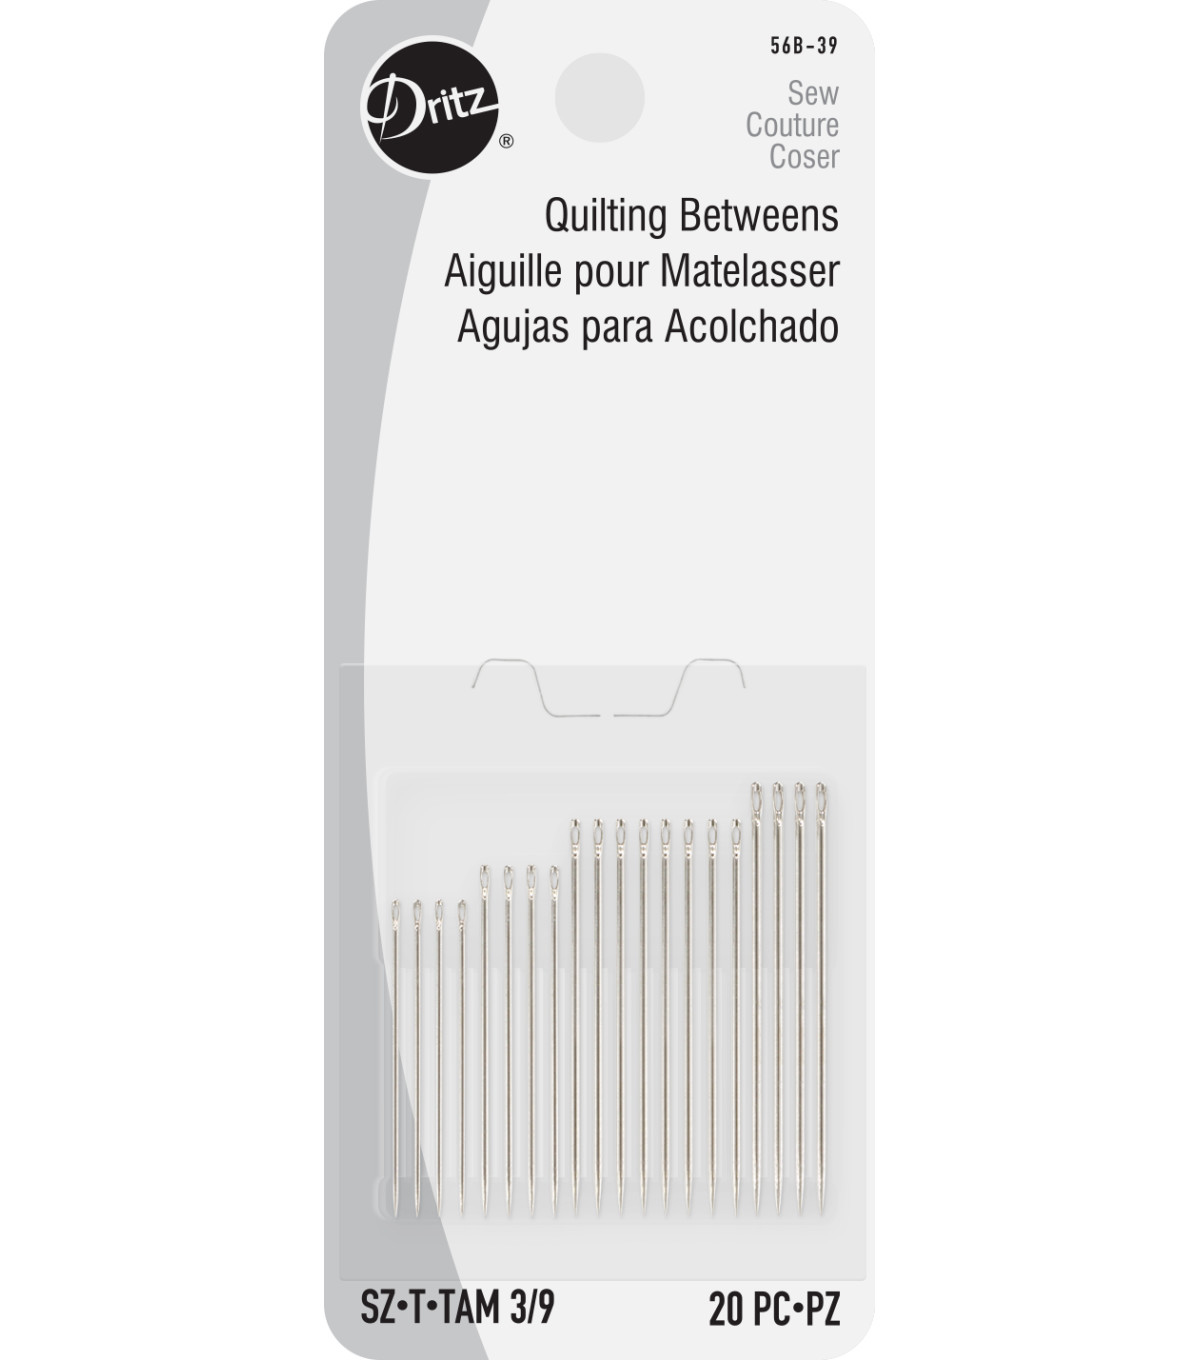 Dritz Quilting Betweens Hand Needles 20pcs Size 5/10, Size 3/9 20/pkg